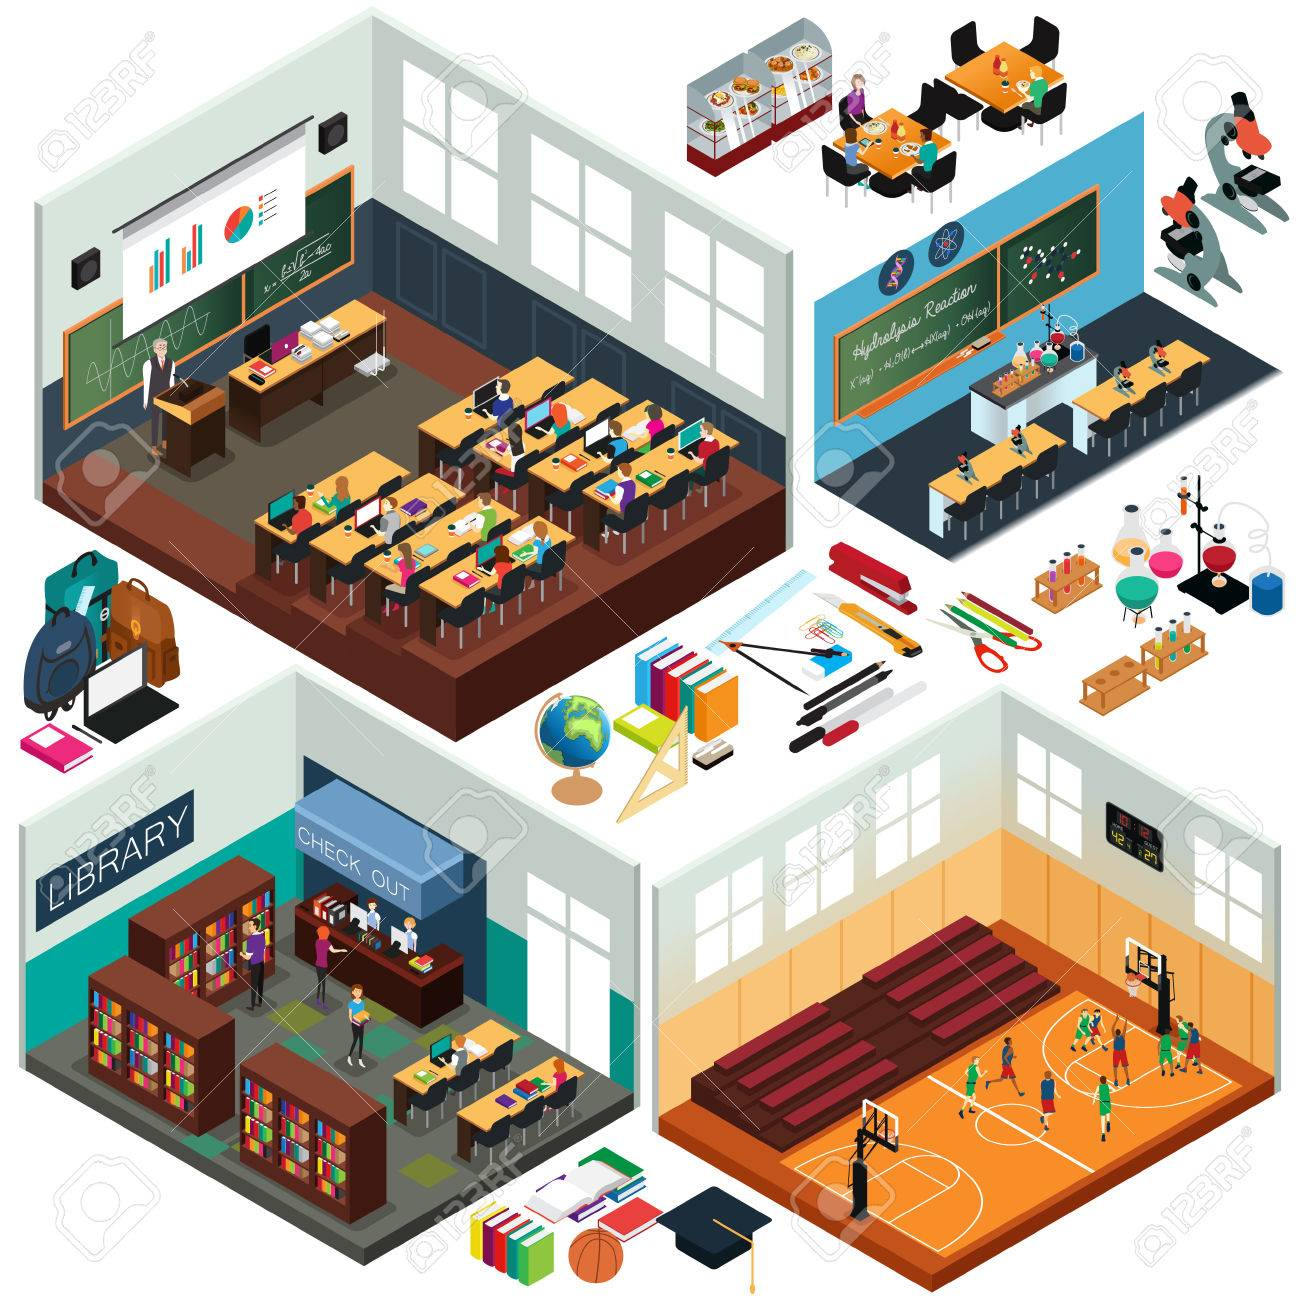 A vector illustration of Isometric Design of School Buildings and Classrooms - 81743029